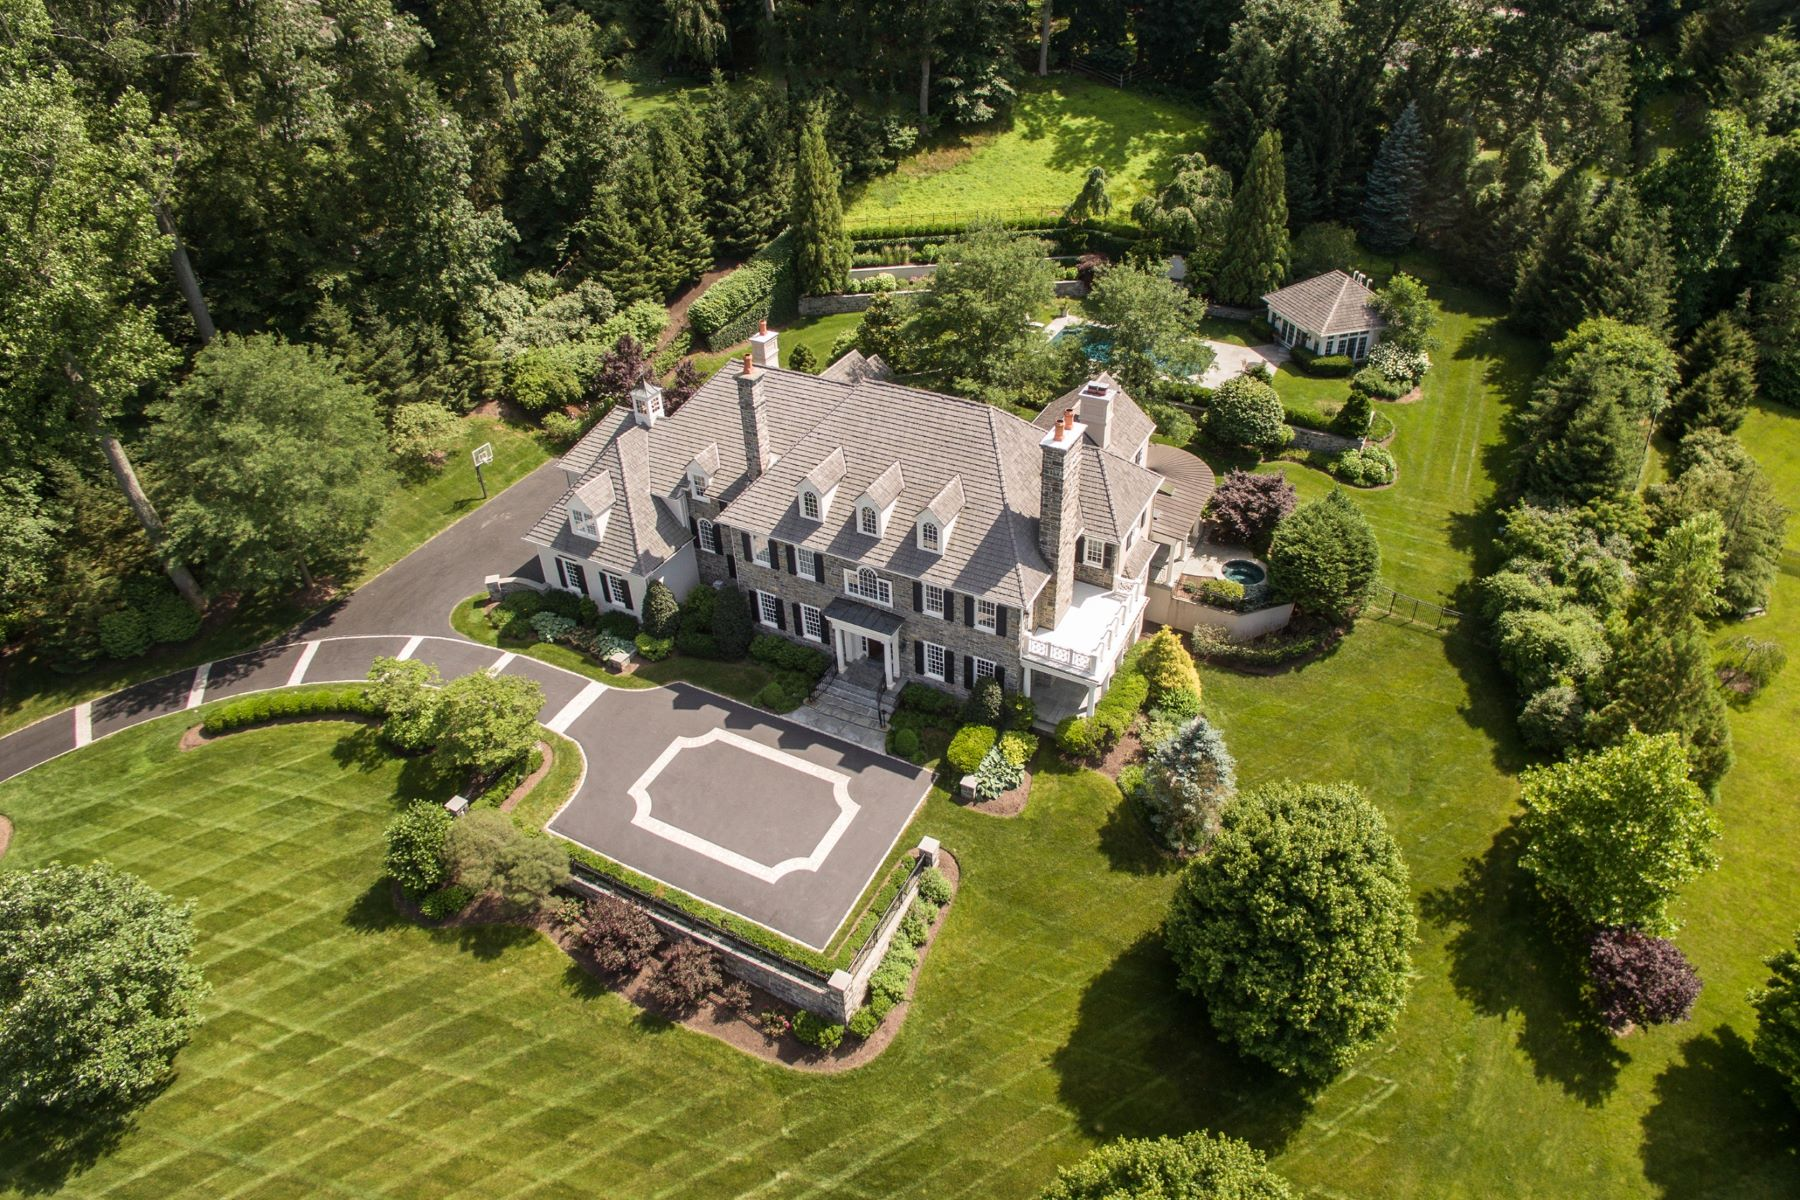 Single Family Home for Sale at Exceptional Residence 103 MILL VIEW LN Newtown Square, Pennsylvania, 19073 United States